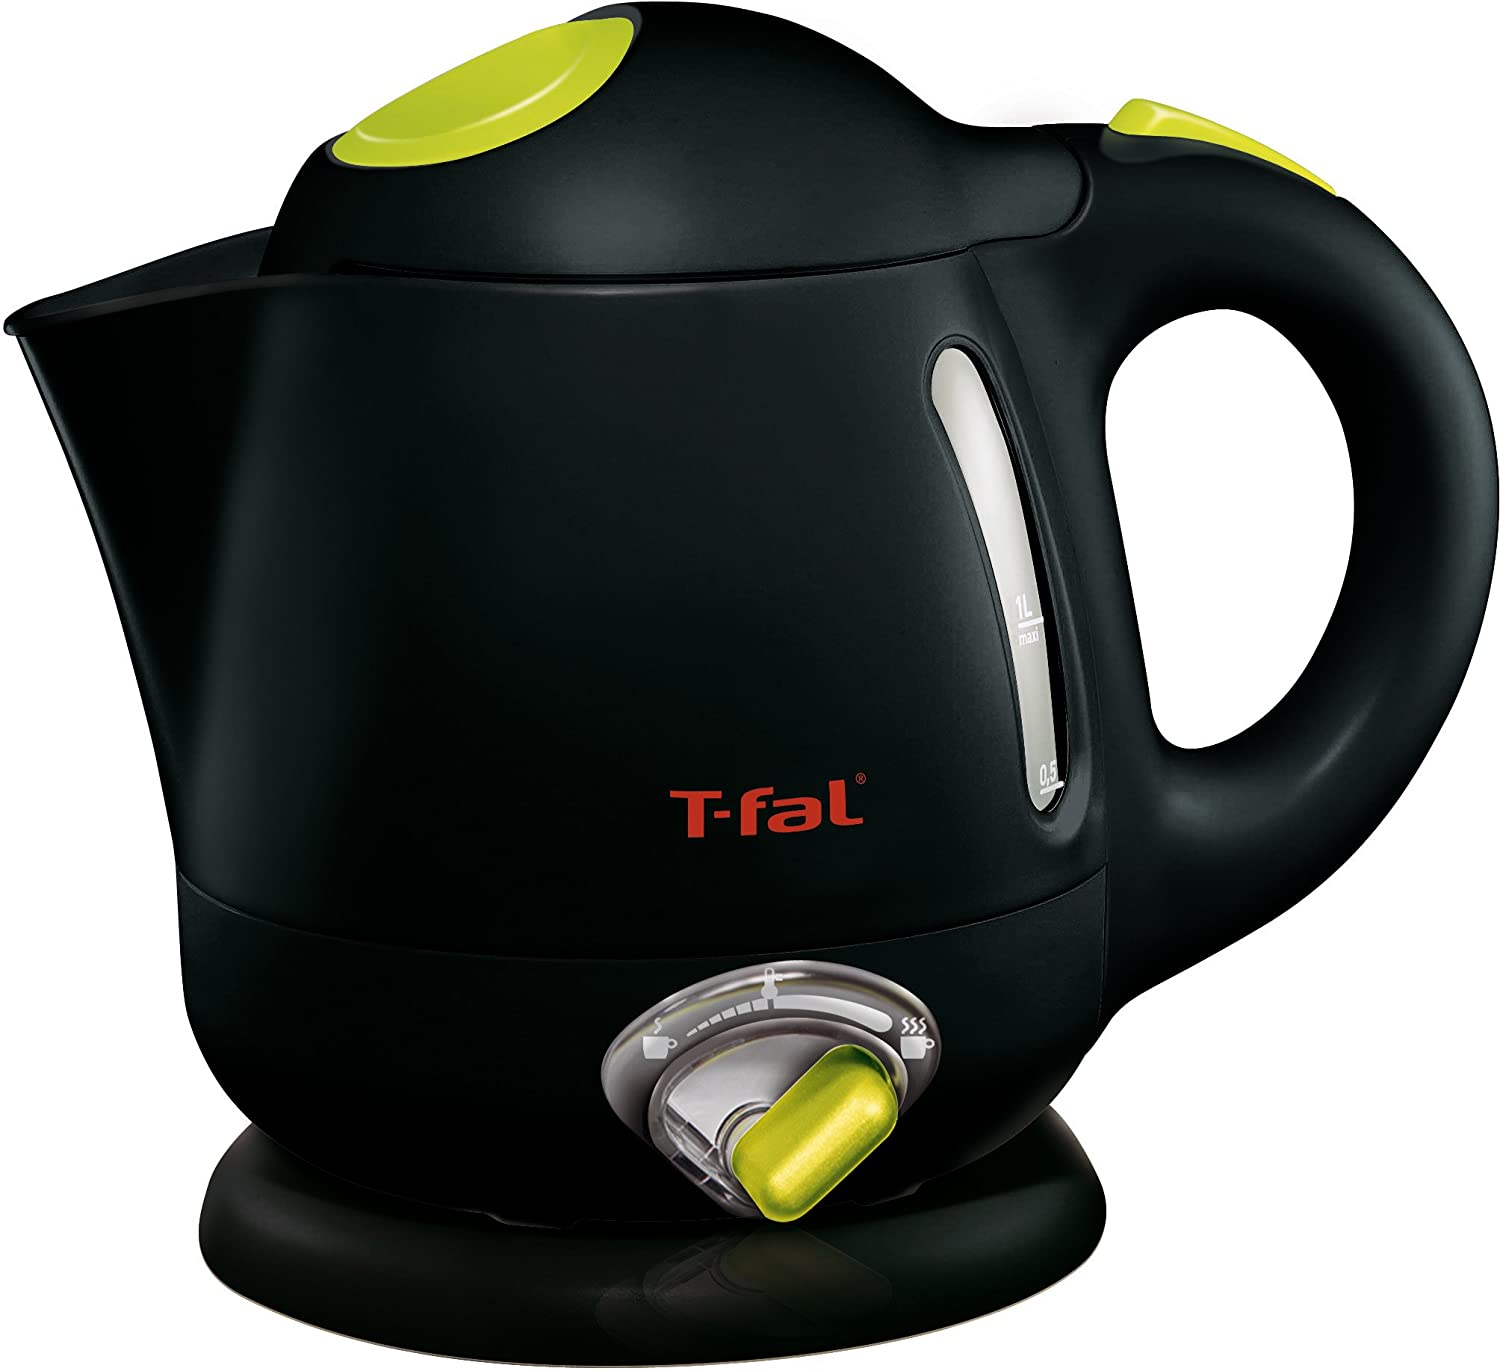 T-fal 7211002159 BF6138 Balanced Living 4-Cup 1750-Watt Electric Kettle with Variable Temperature and Auto Shut Off, 1-Liter, Black